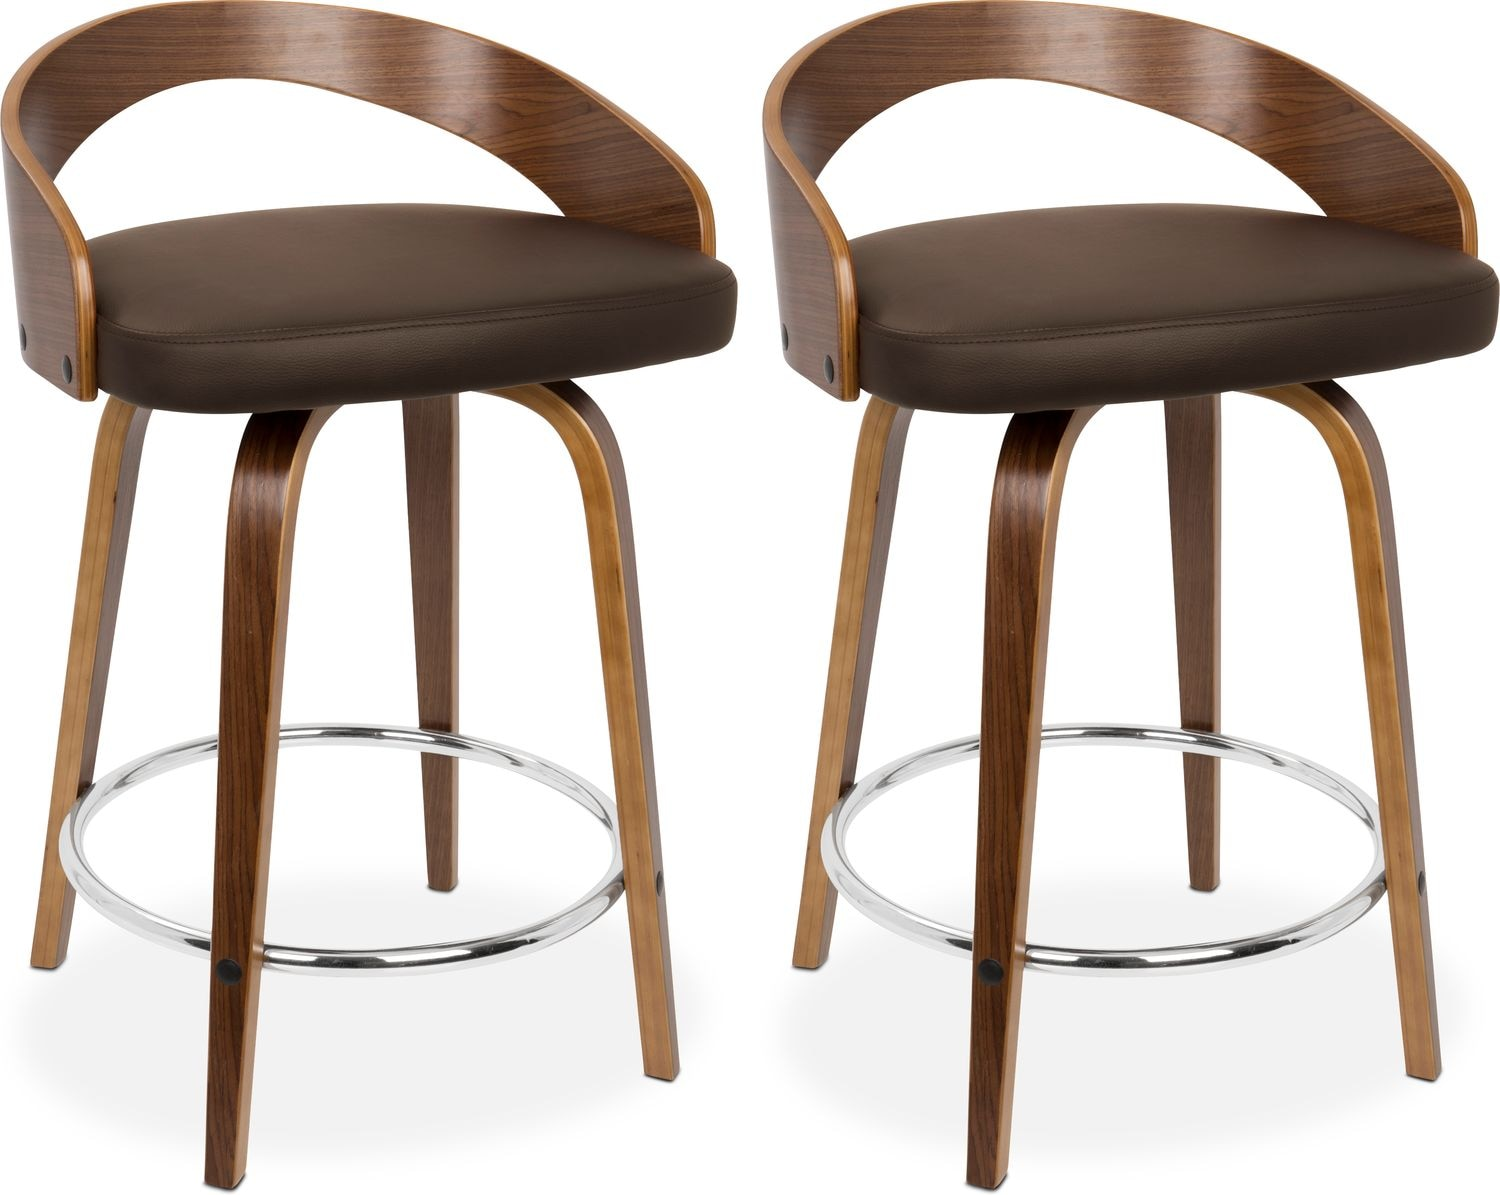 Dining Room Furniture - Finn Set of 2 Counter-Height Stools - Brown